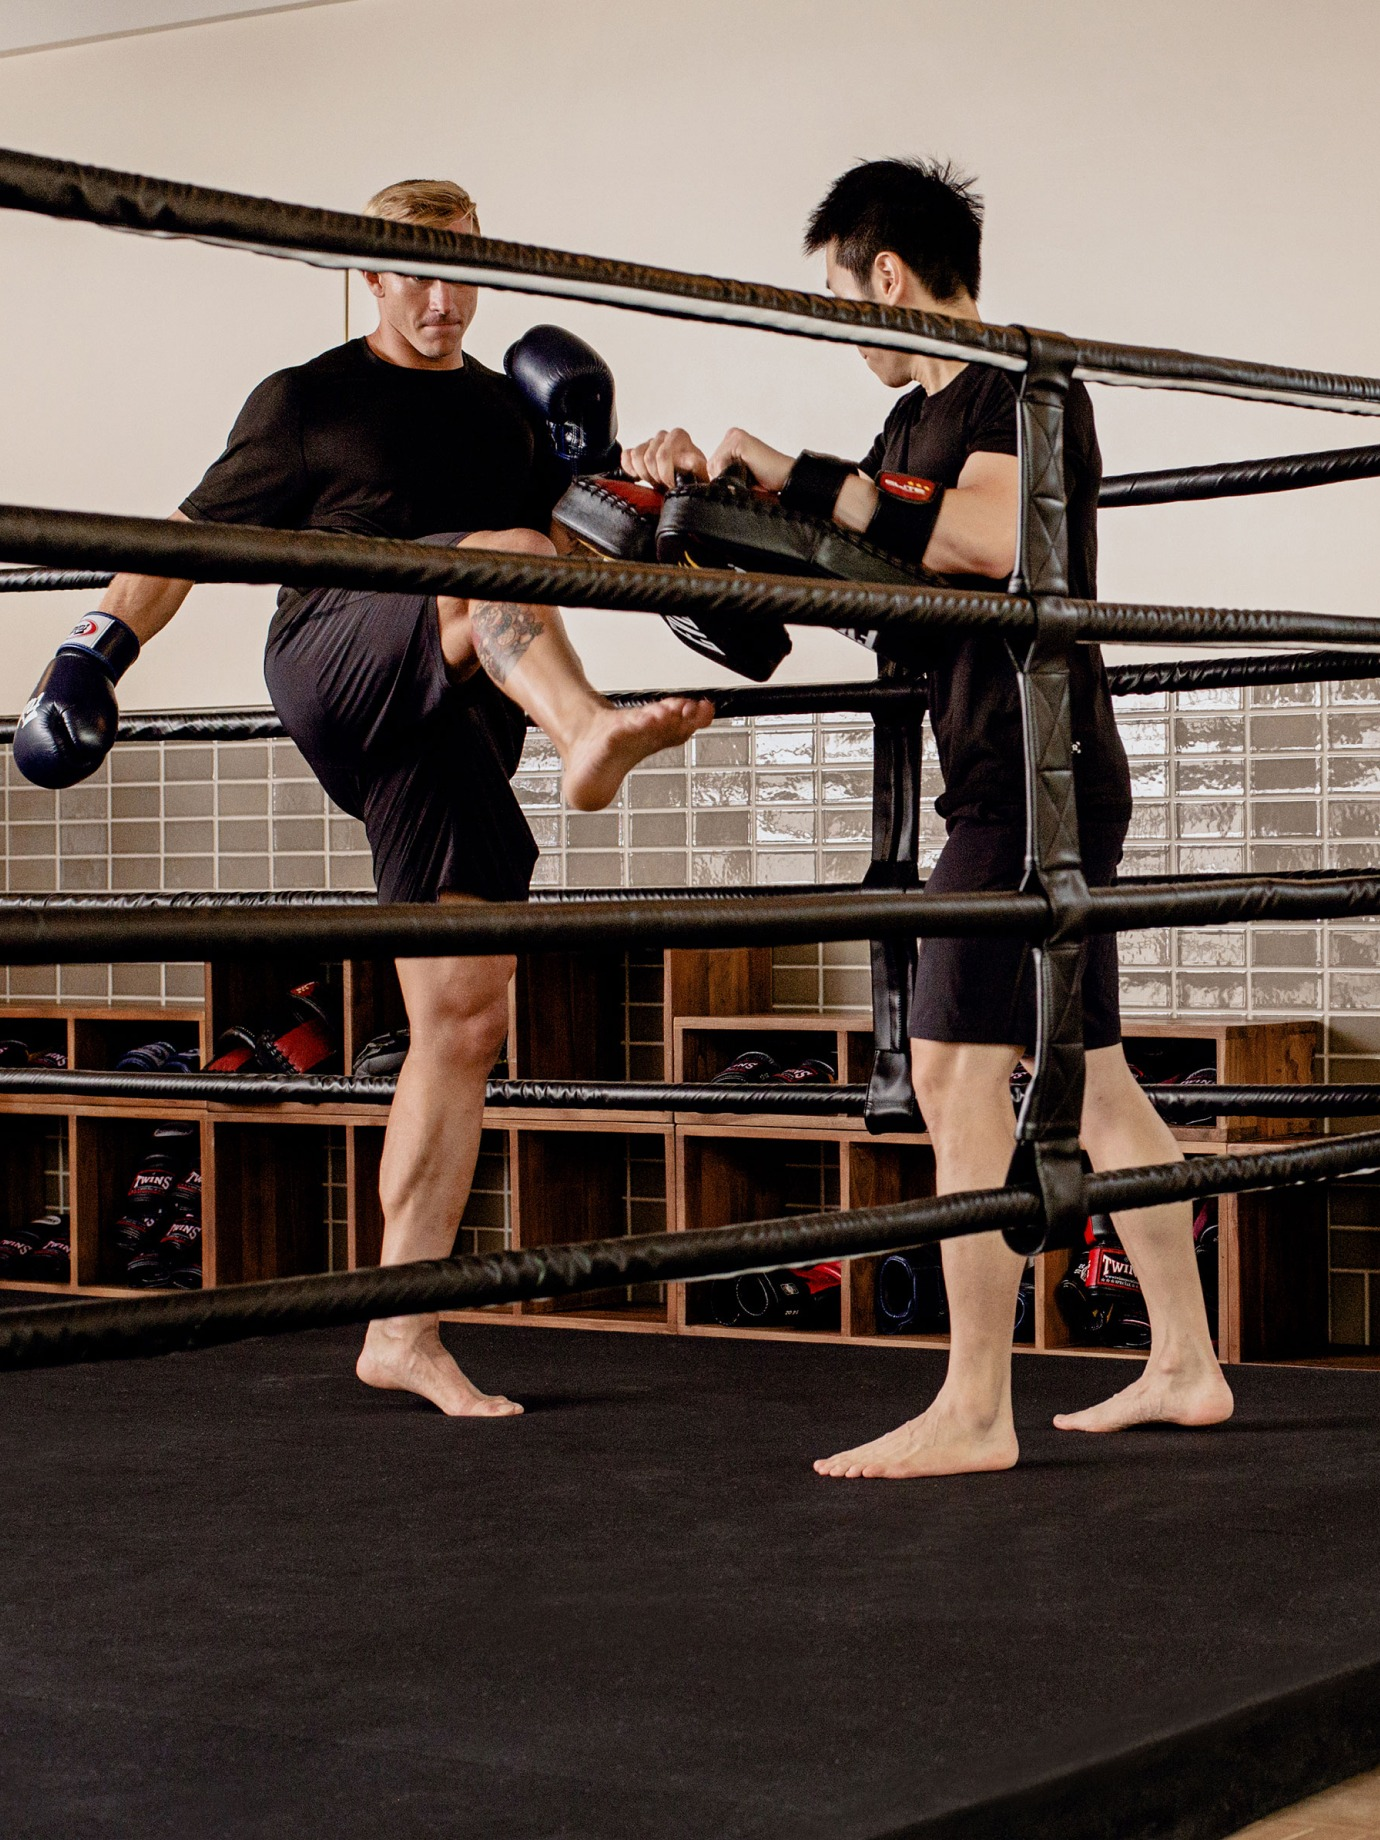 Two men at a kickboxing lesson in a boxing ring.